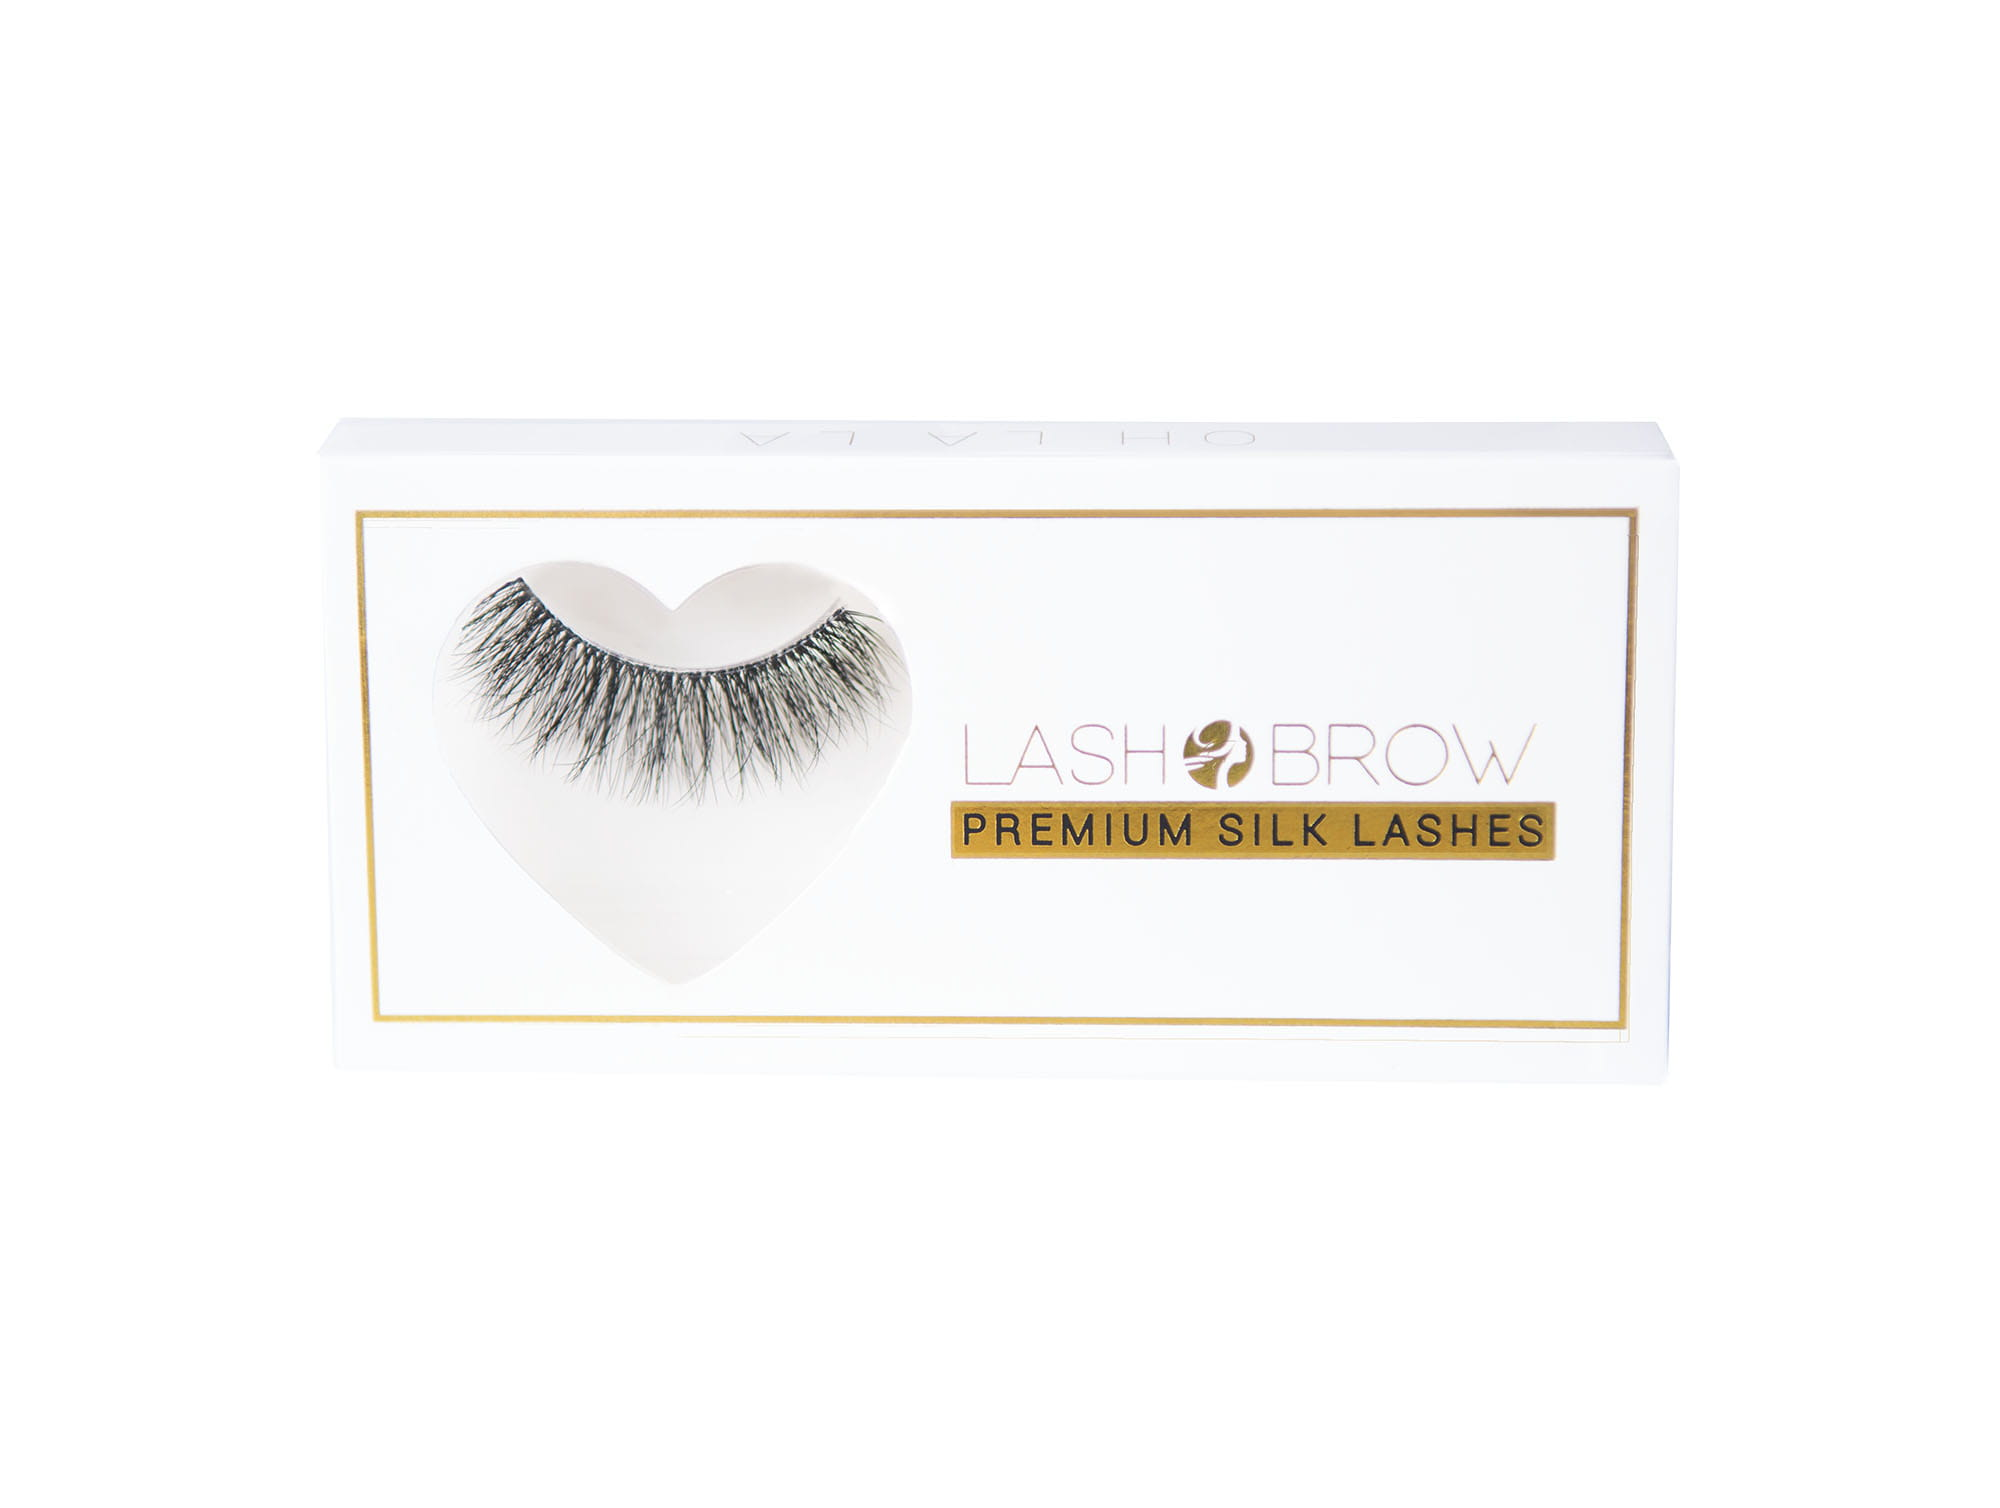 Oh La La Premium Silk Strip Lashes Lash Brow